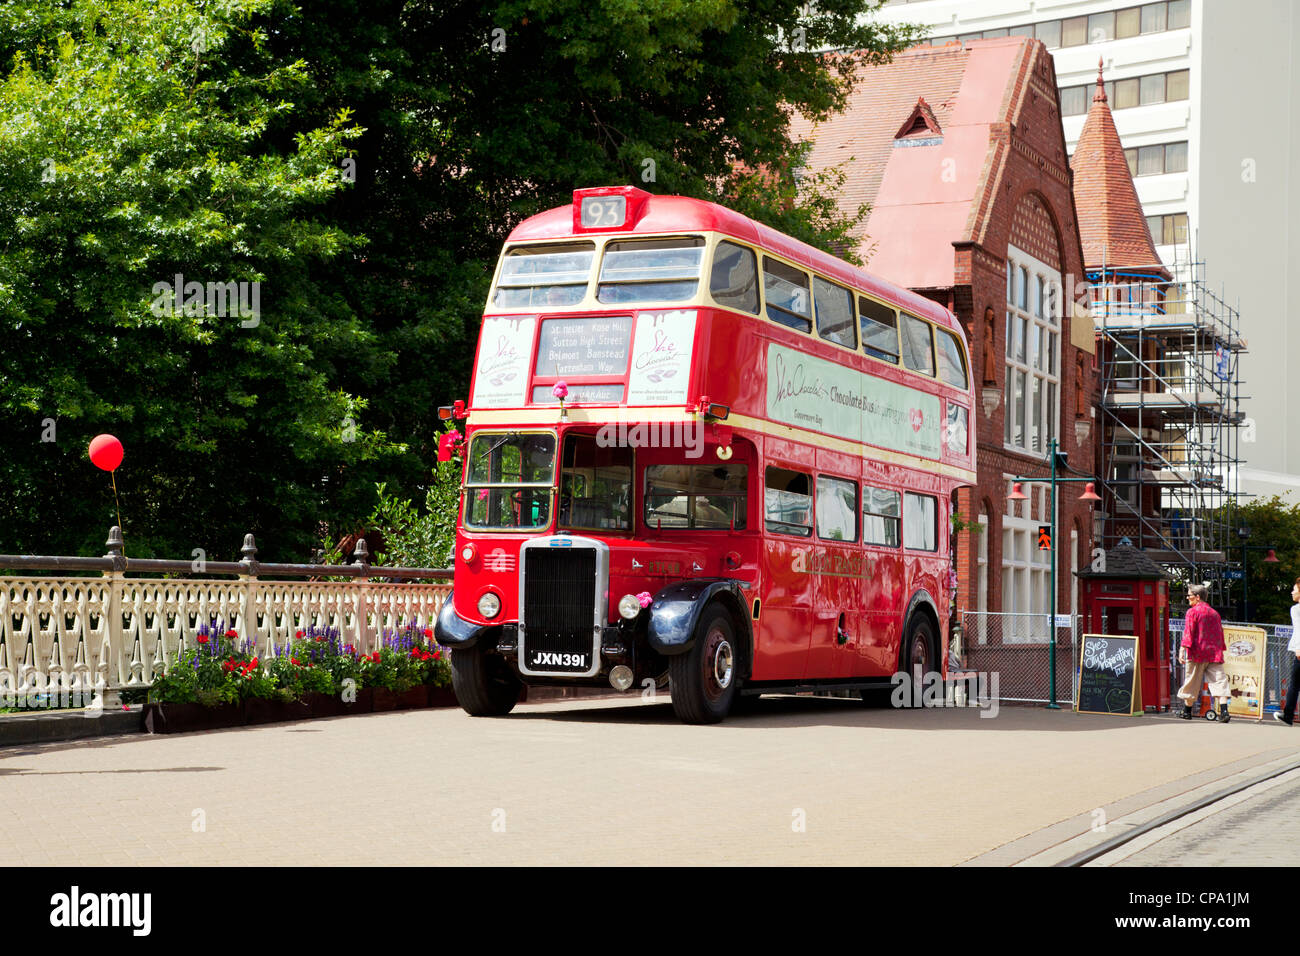 London Transport red double decker bus in Christchurch, New Zealand, ready to take tourists on a tour of the city. - Stock Image